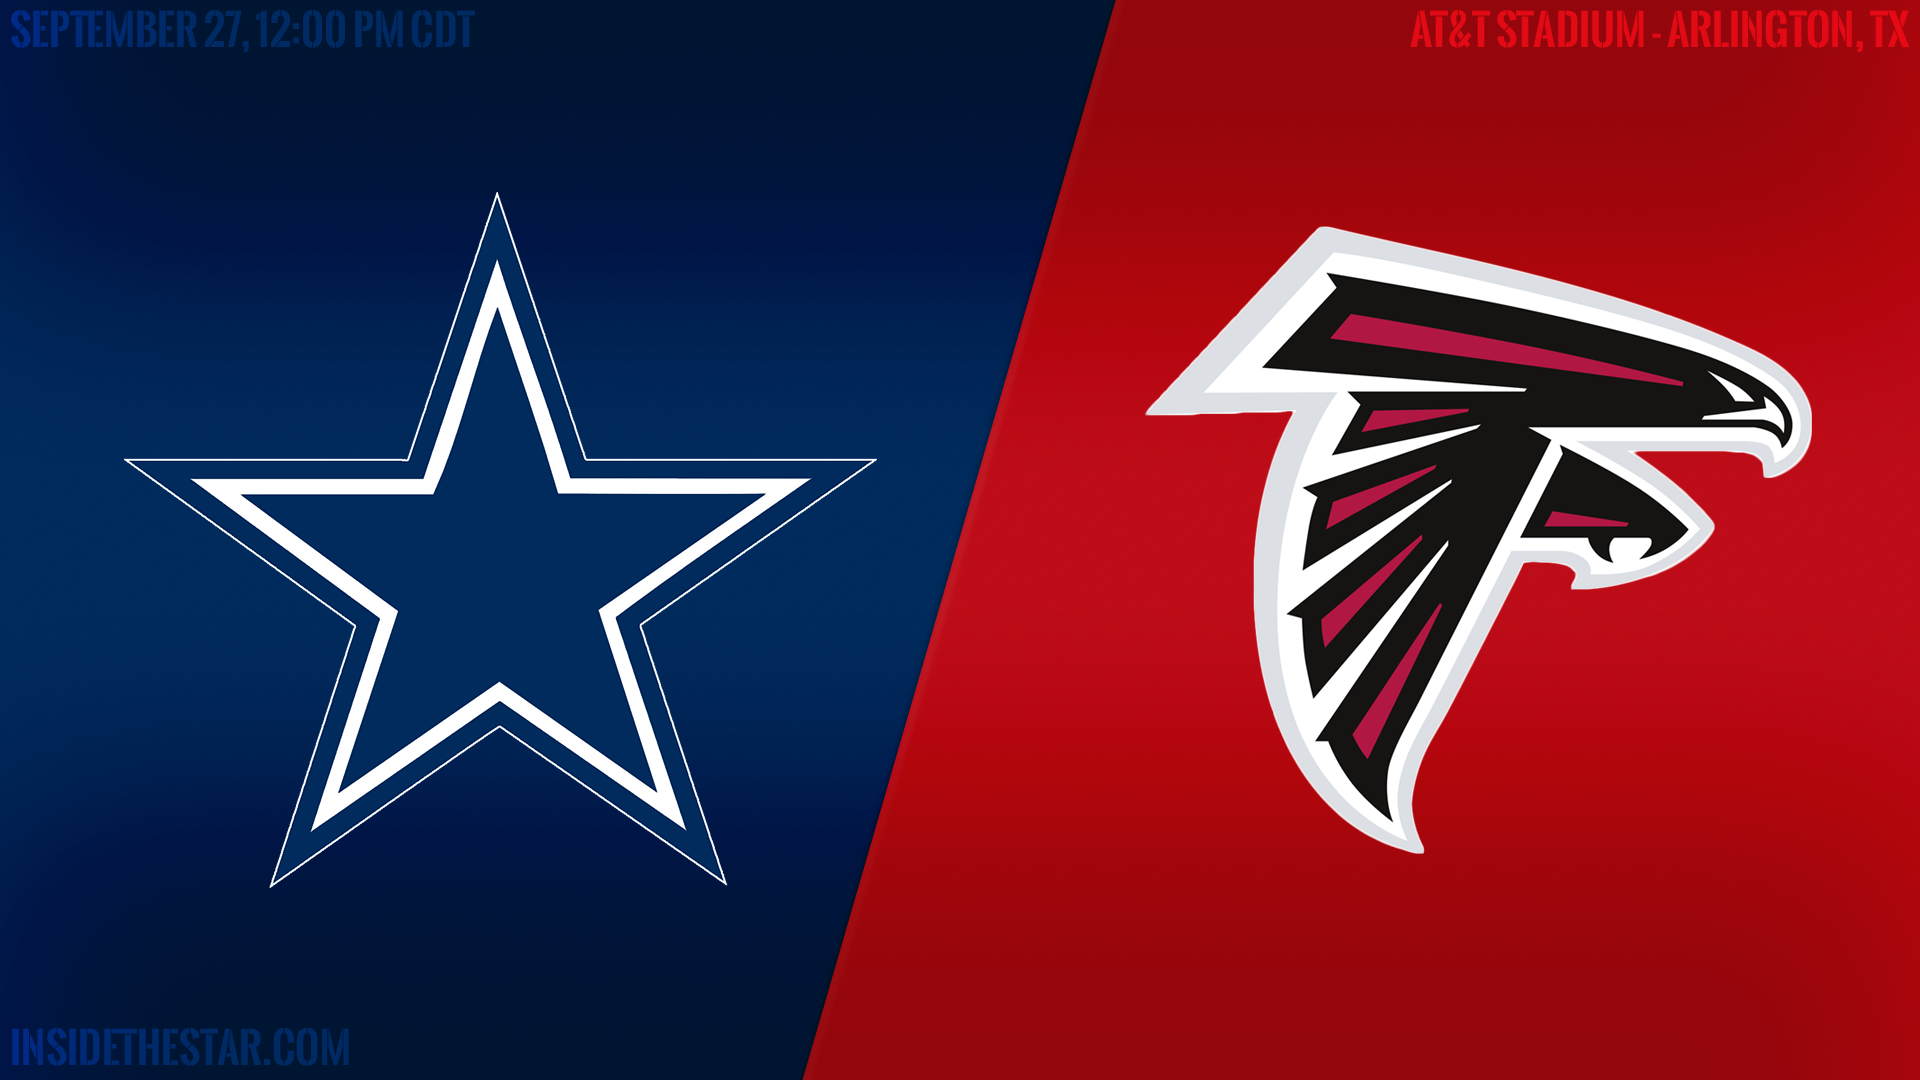 Dallas Cowboys Roster >> #SmoothView Pregame Report: Dallas Cowboys vs Atlanta Falcons